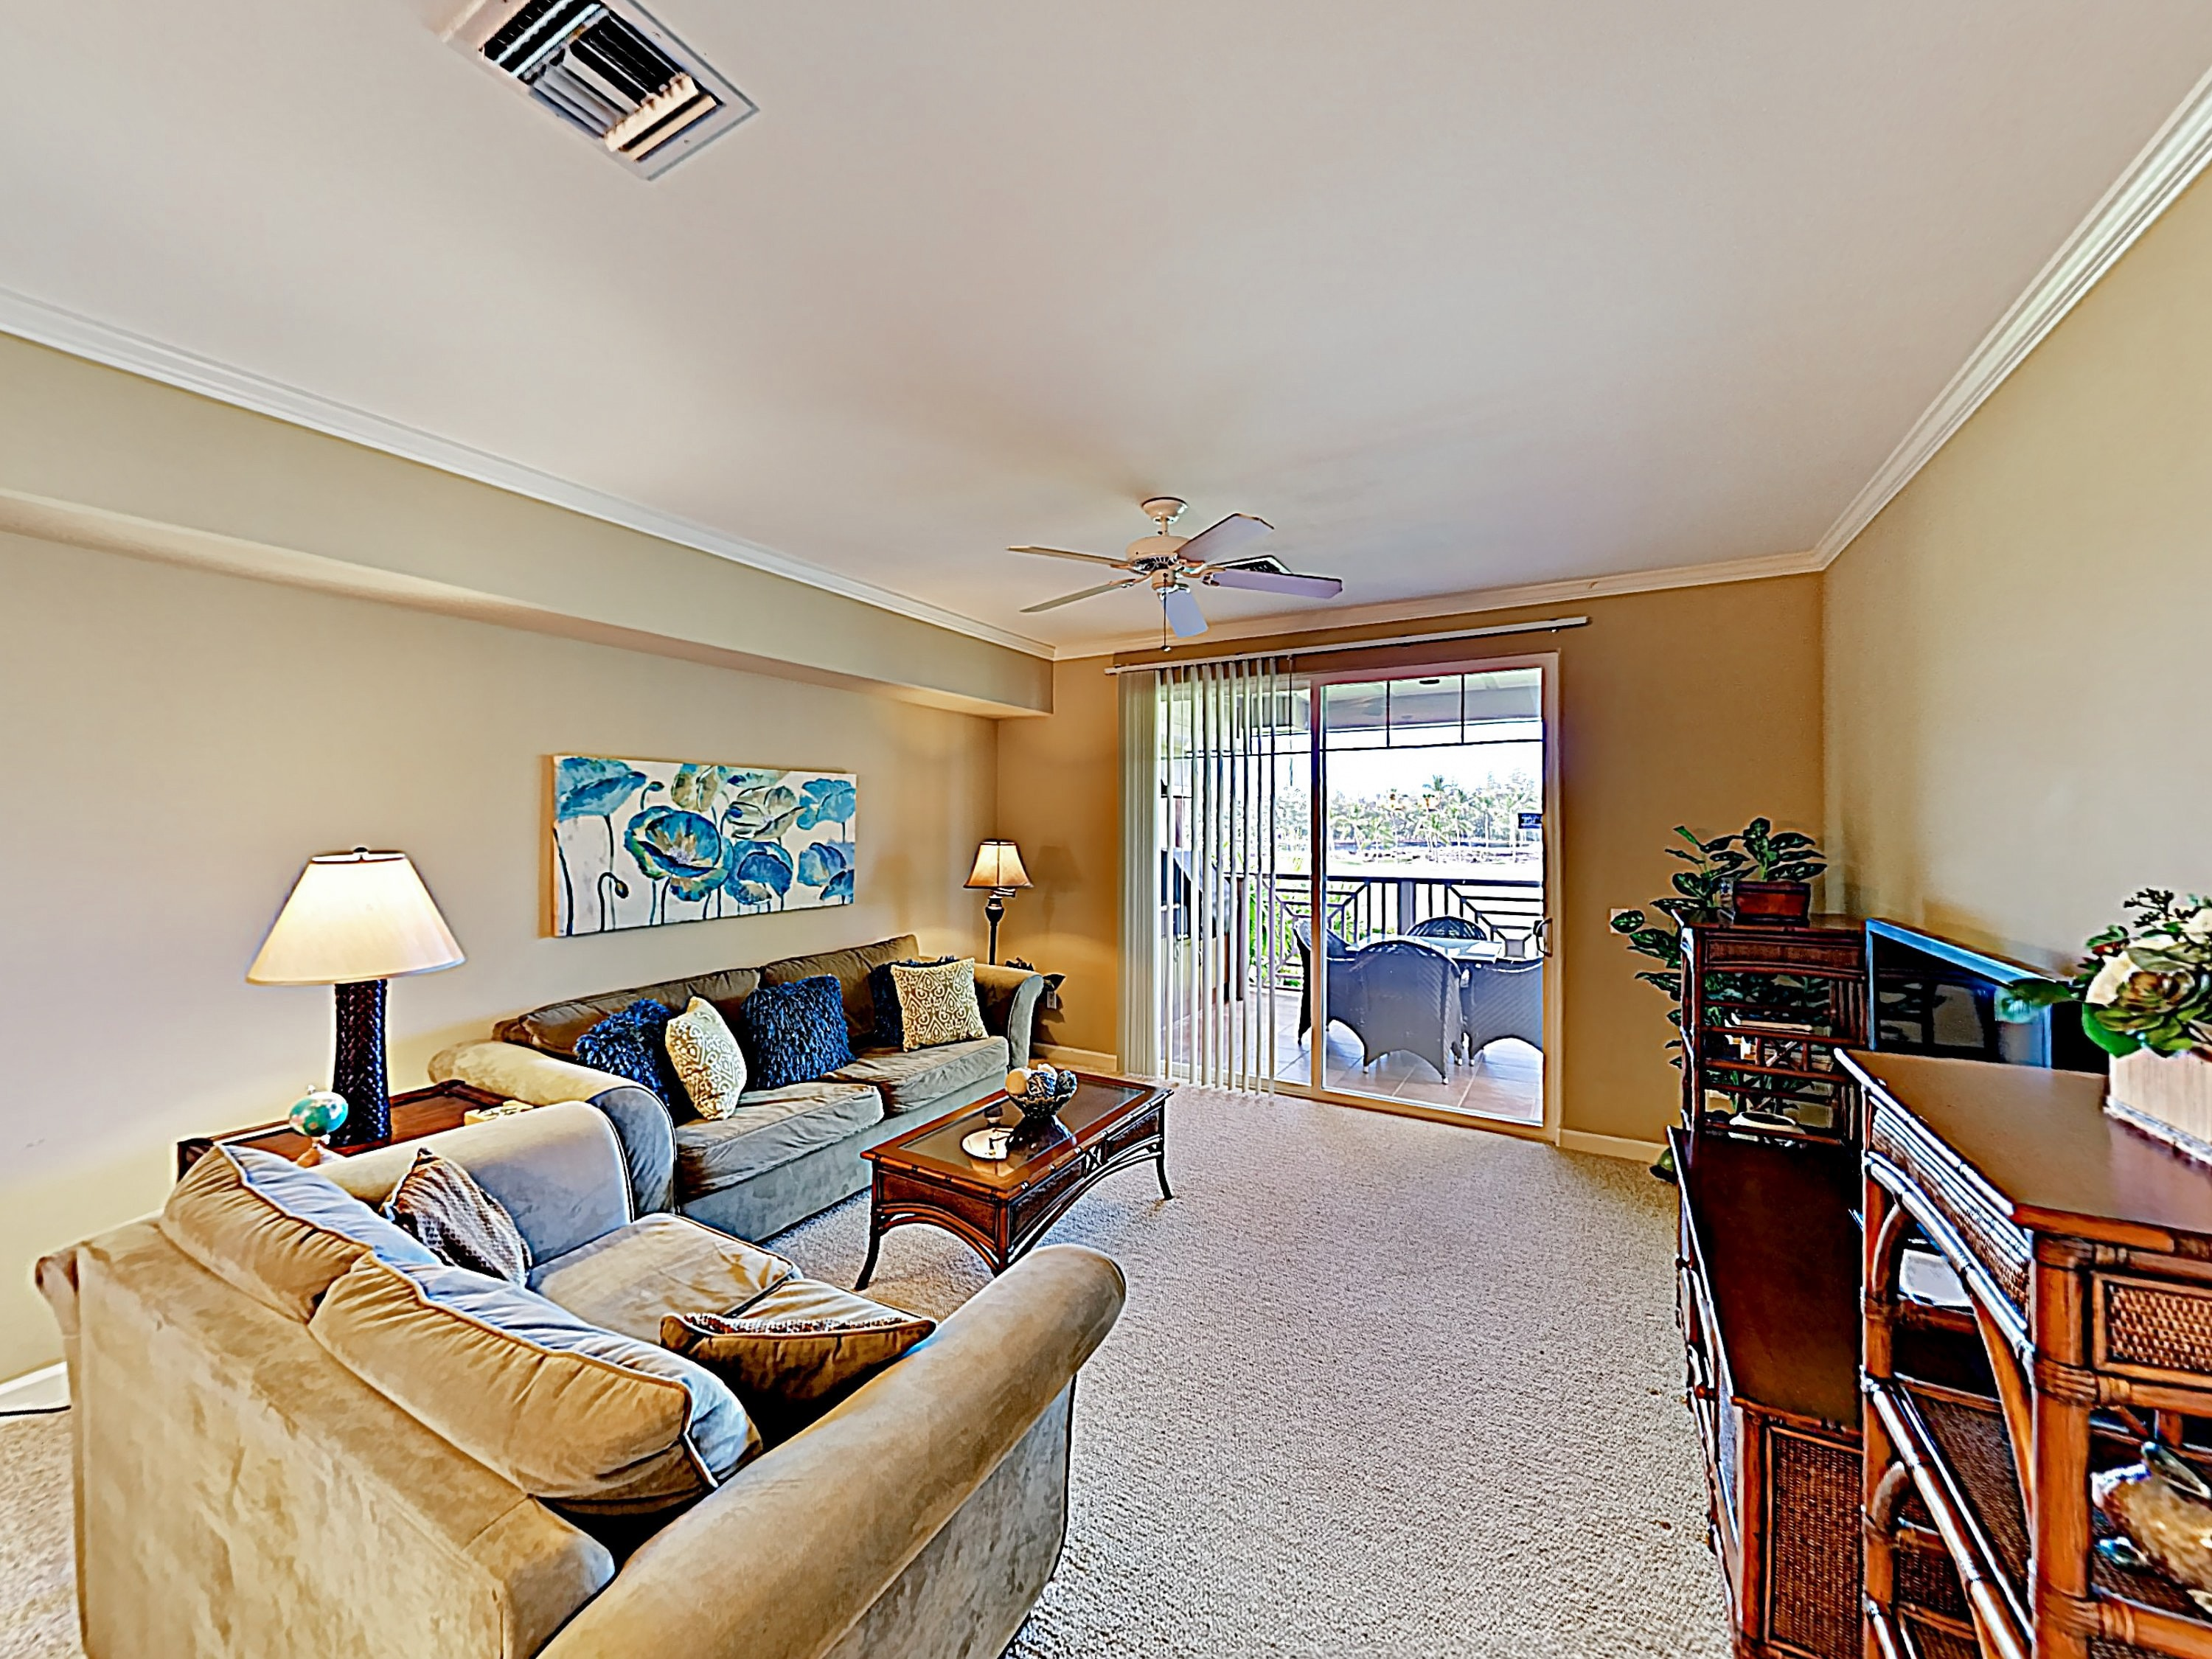 Welcome to Waikoloa Beach Villas! This condo is professionally managed by TurnKey Vacation Rentals.